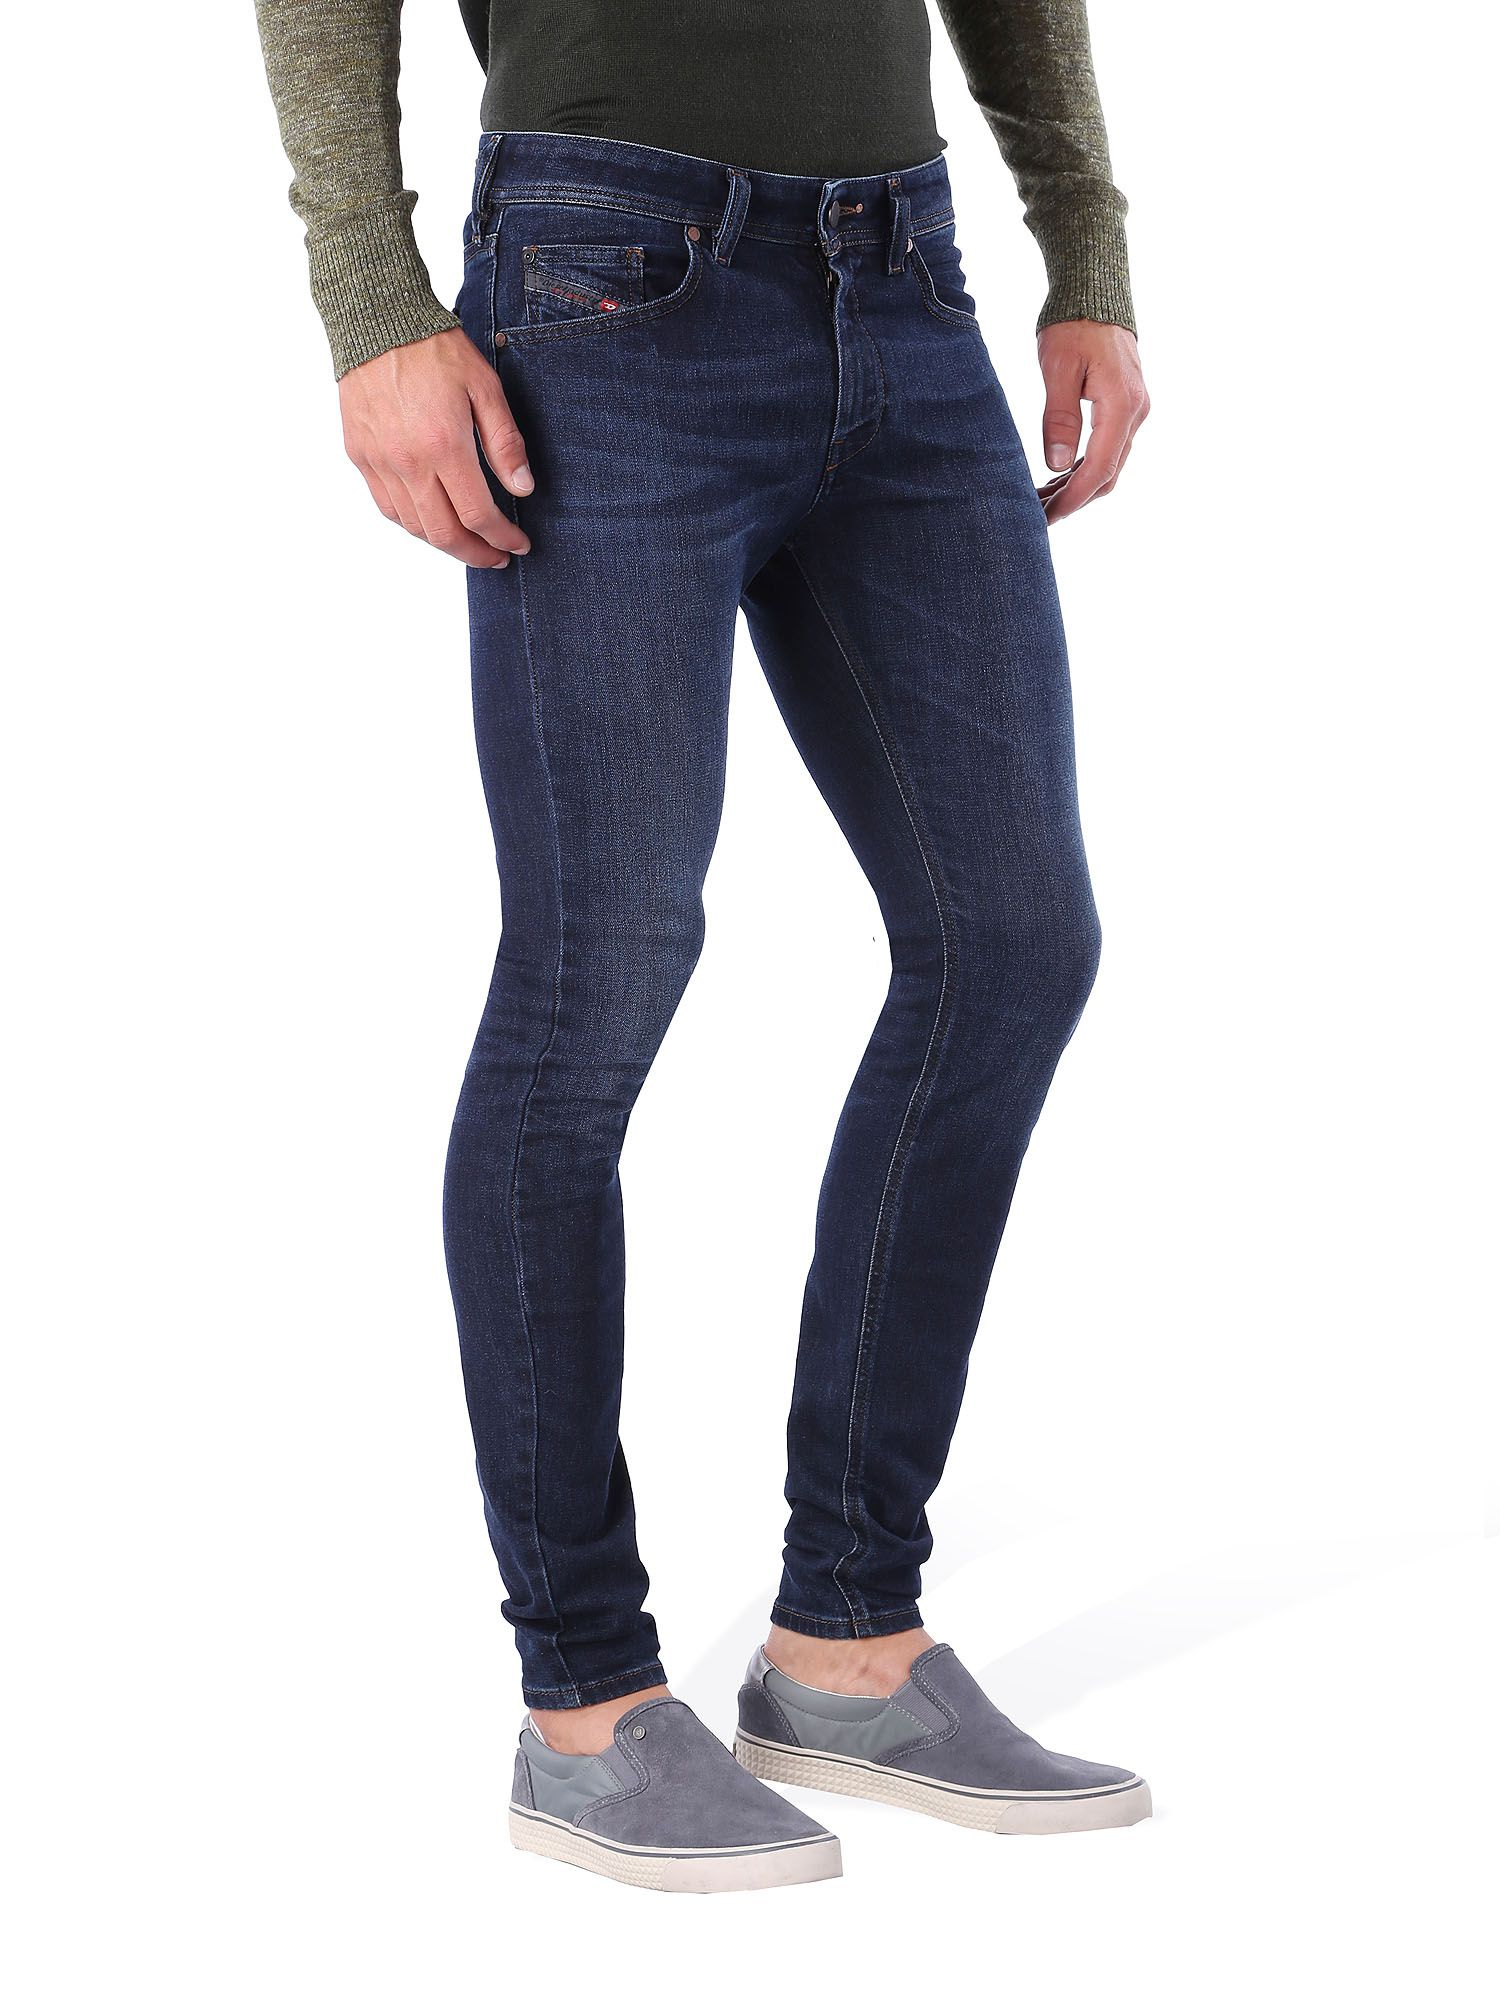 Shop for men's skinny jeans at ASOS. Our skinny jeans for men are perfect for the fashion forward denim enthusiast. Add some cool to your wardrobe.